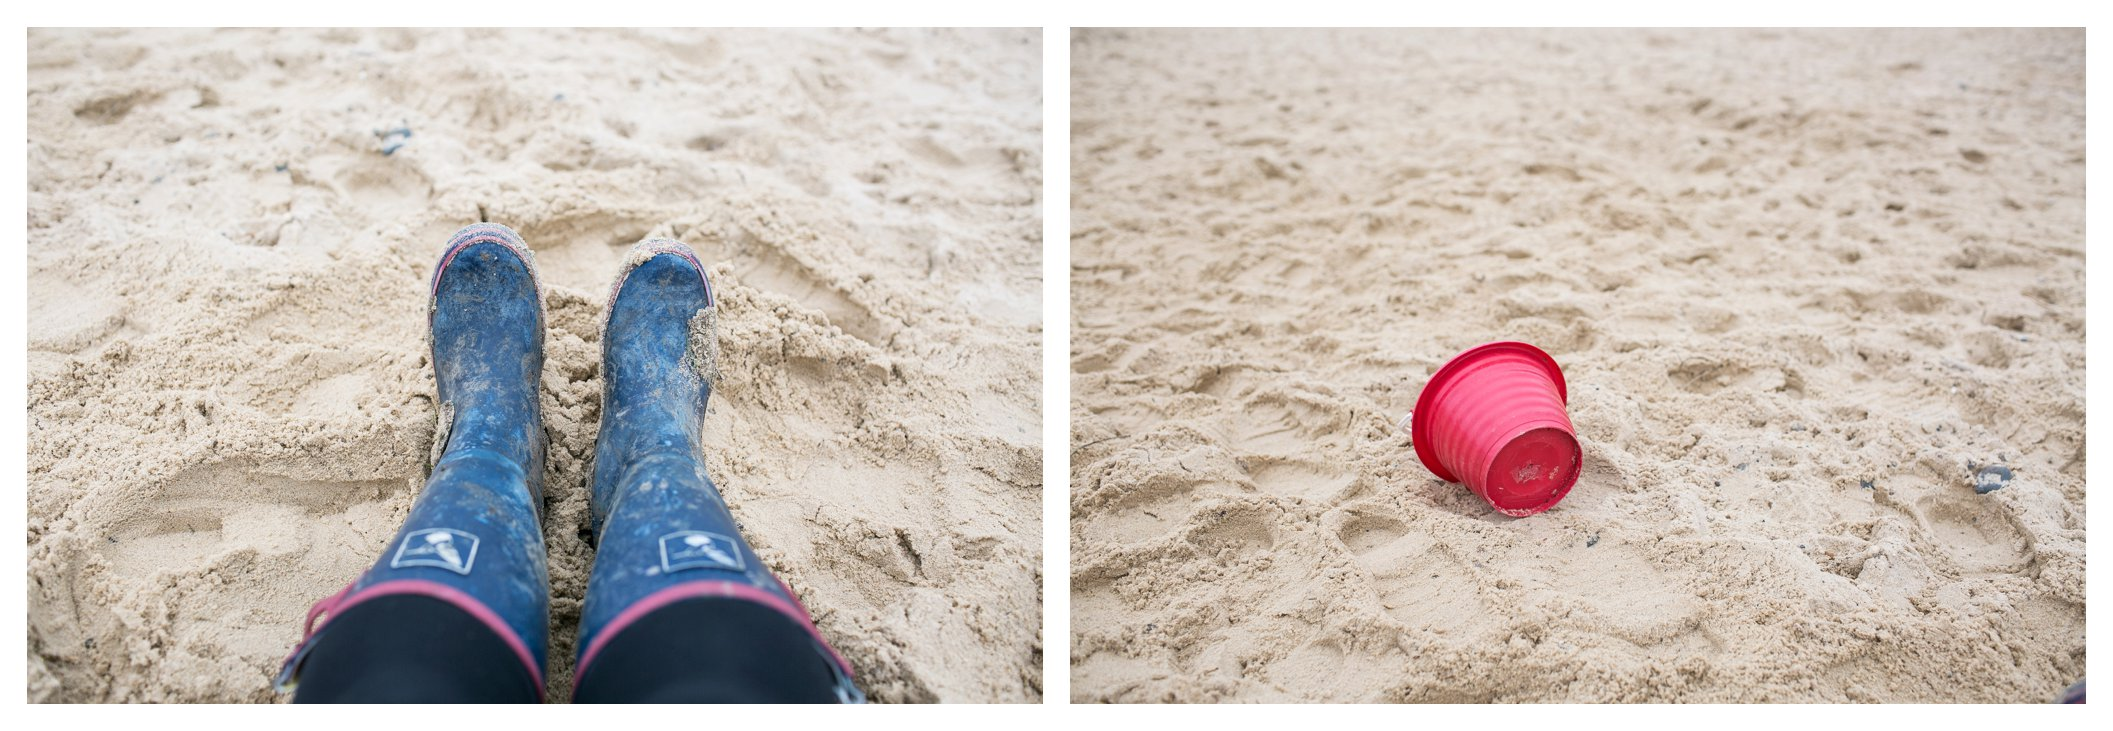 wellies and a red bucket at southwold beach